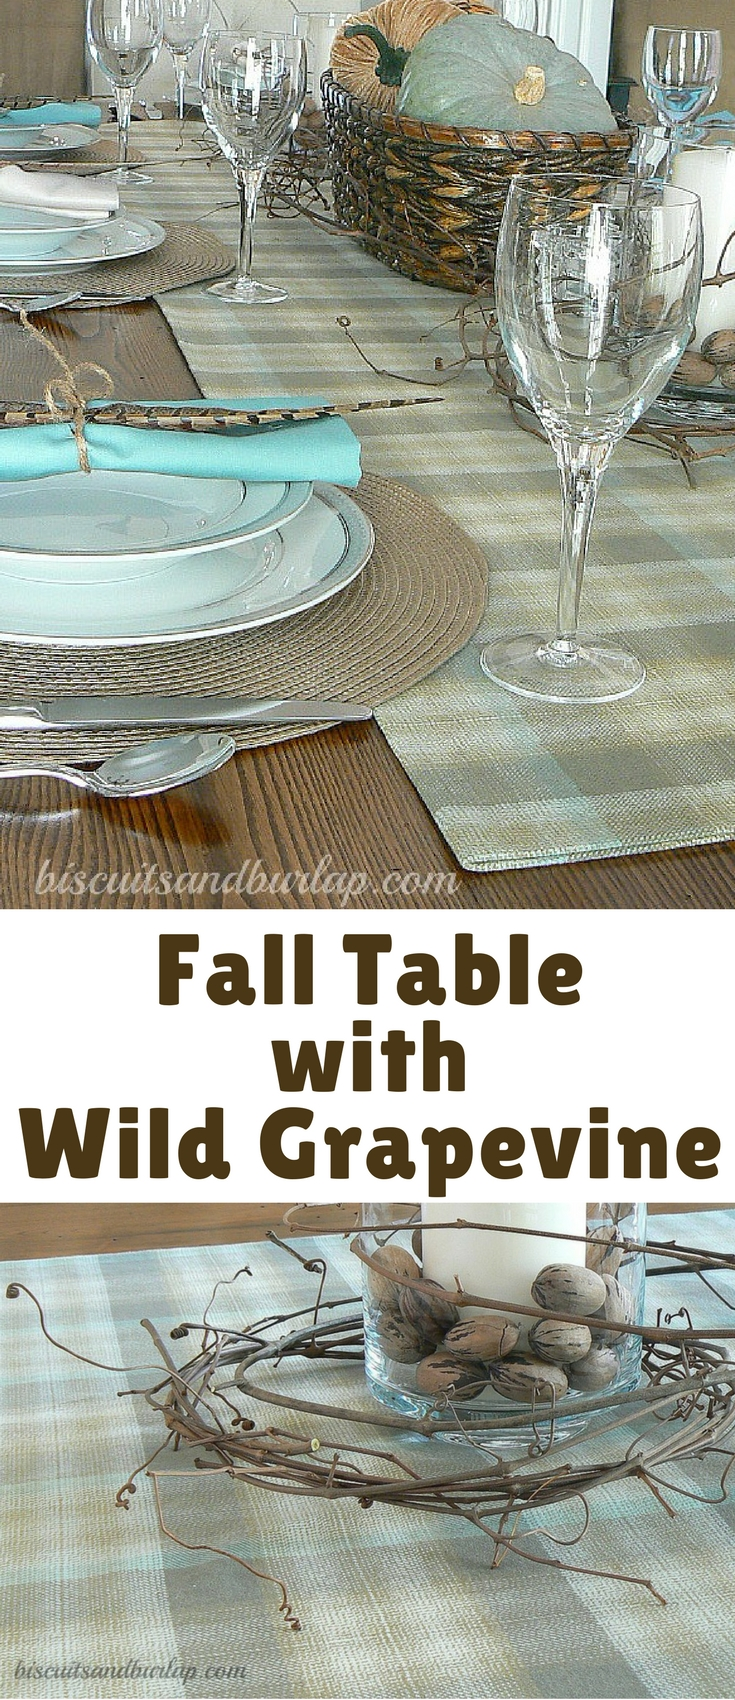 This fall table will be great through the month of November, including Thanksgiving.